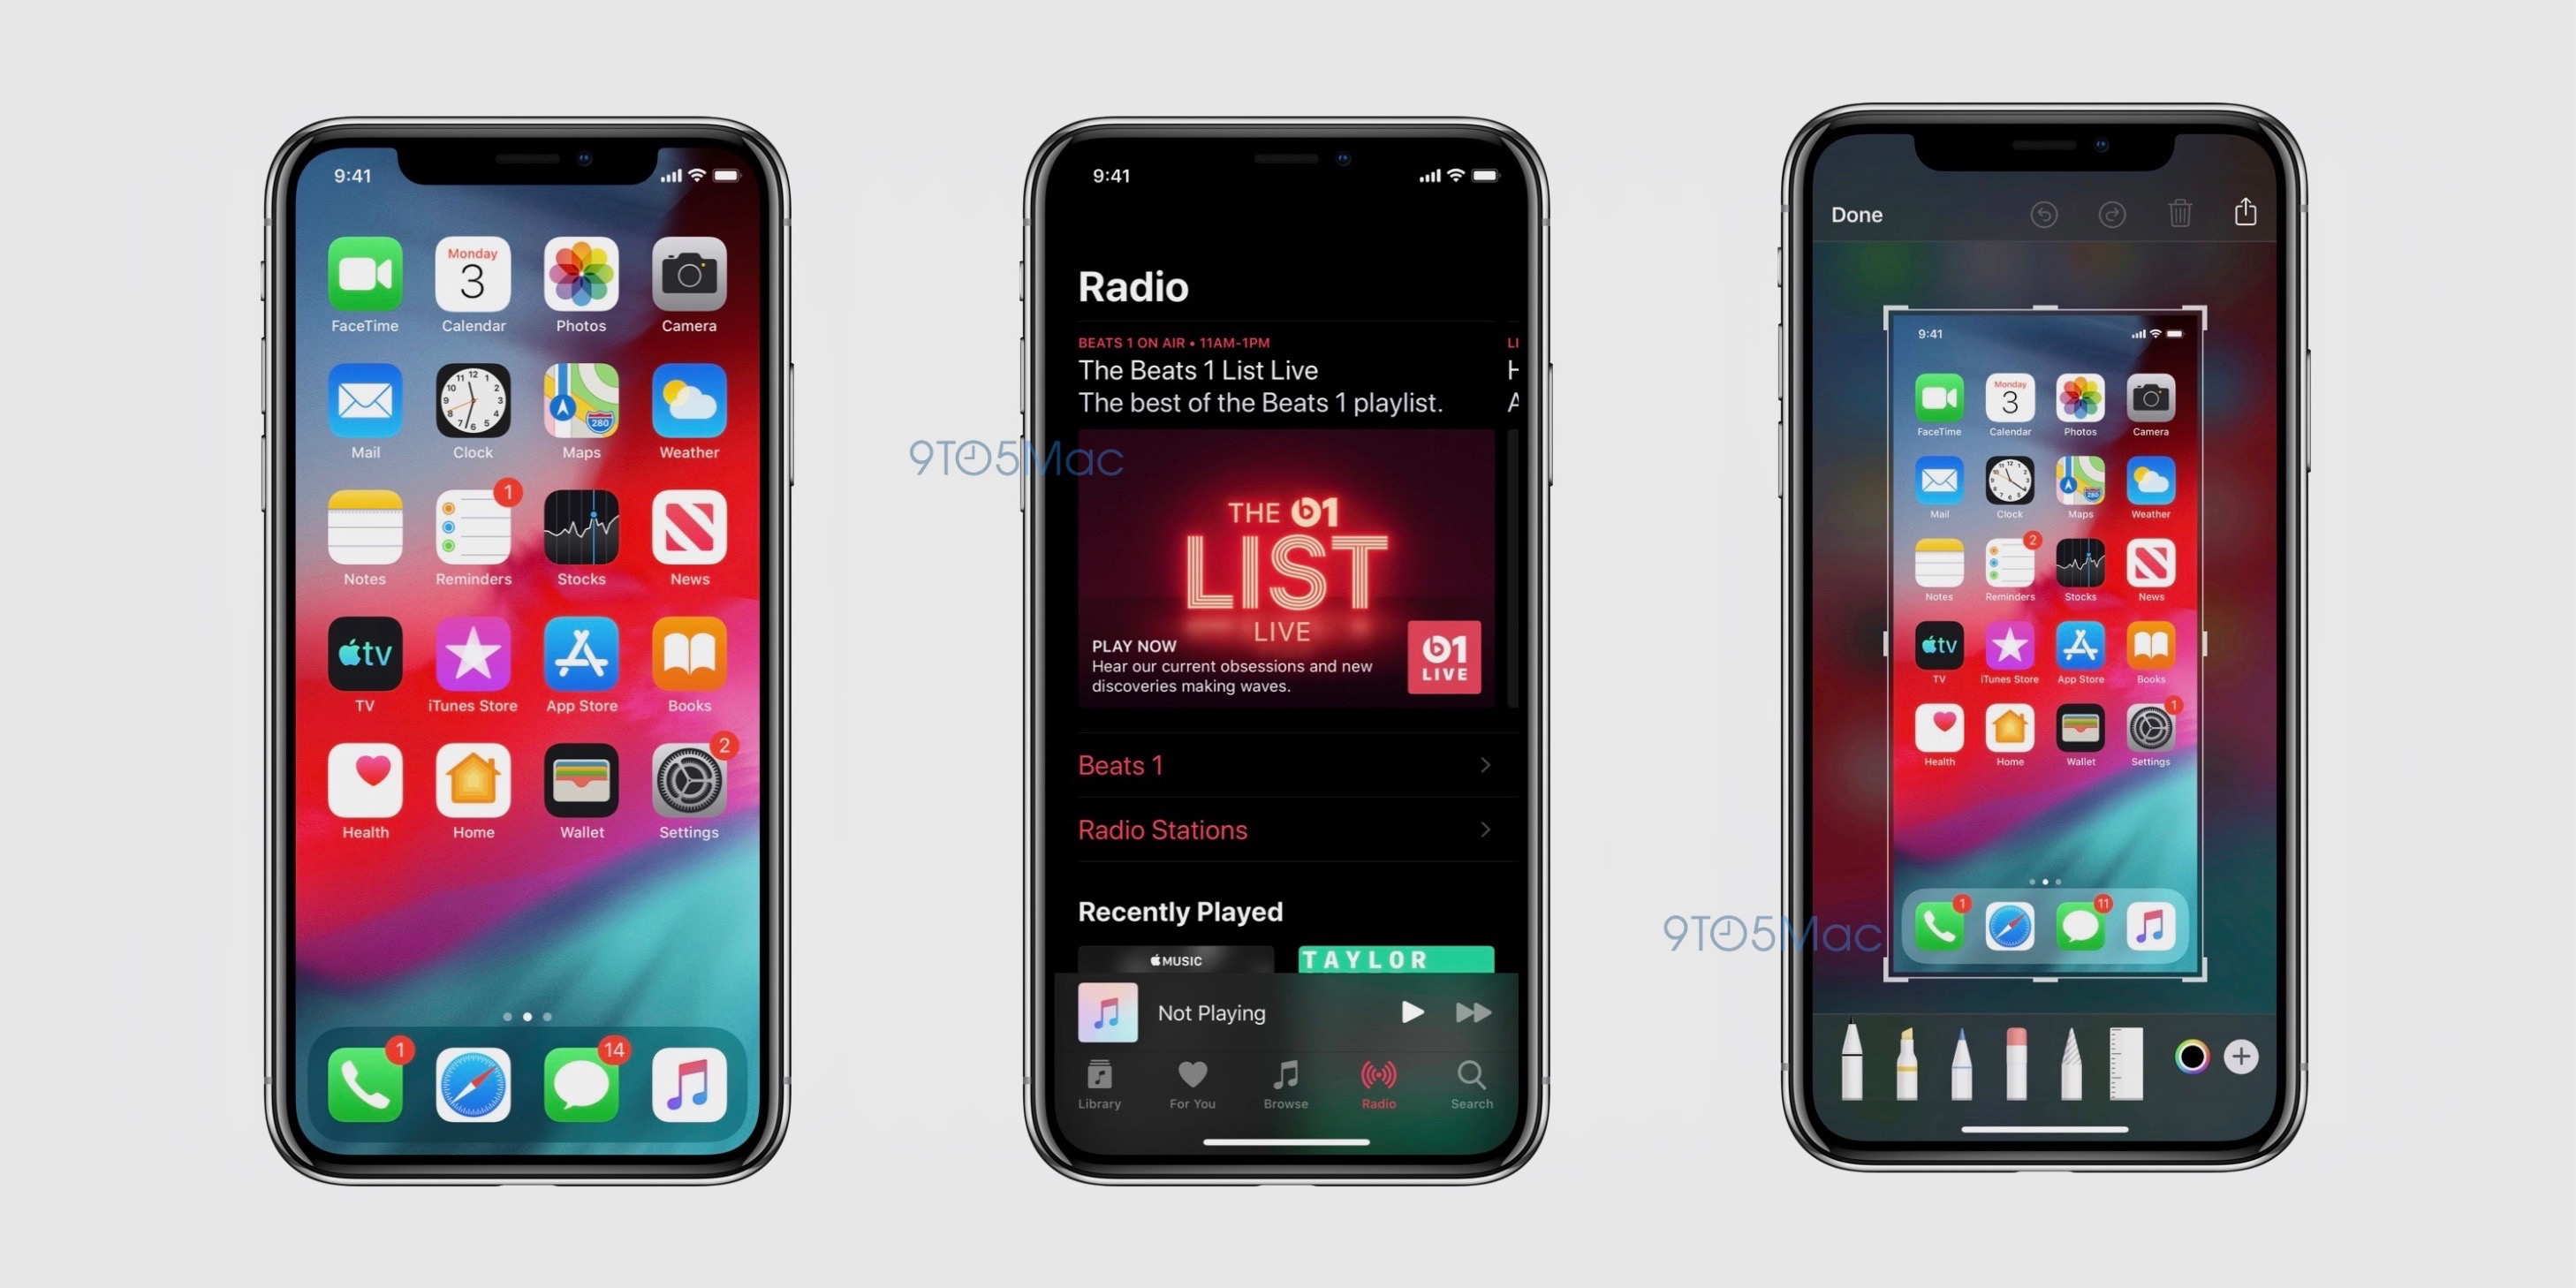 Leaked screenshots confirm dark mode is coming to iOS 13 | TechCrunch